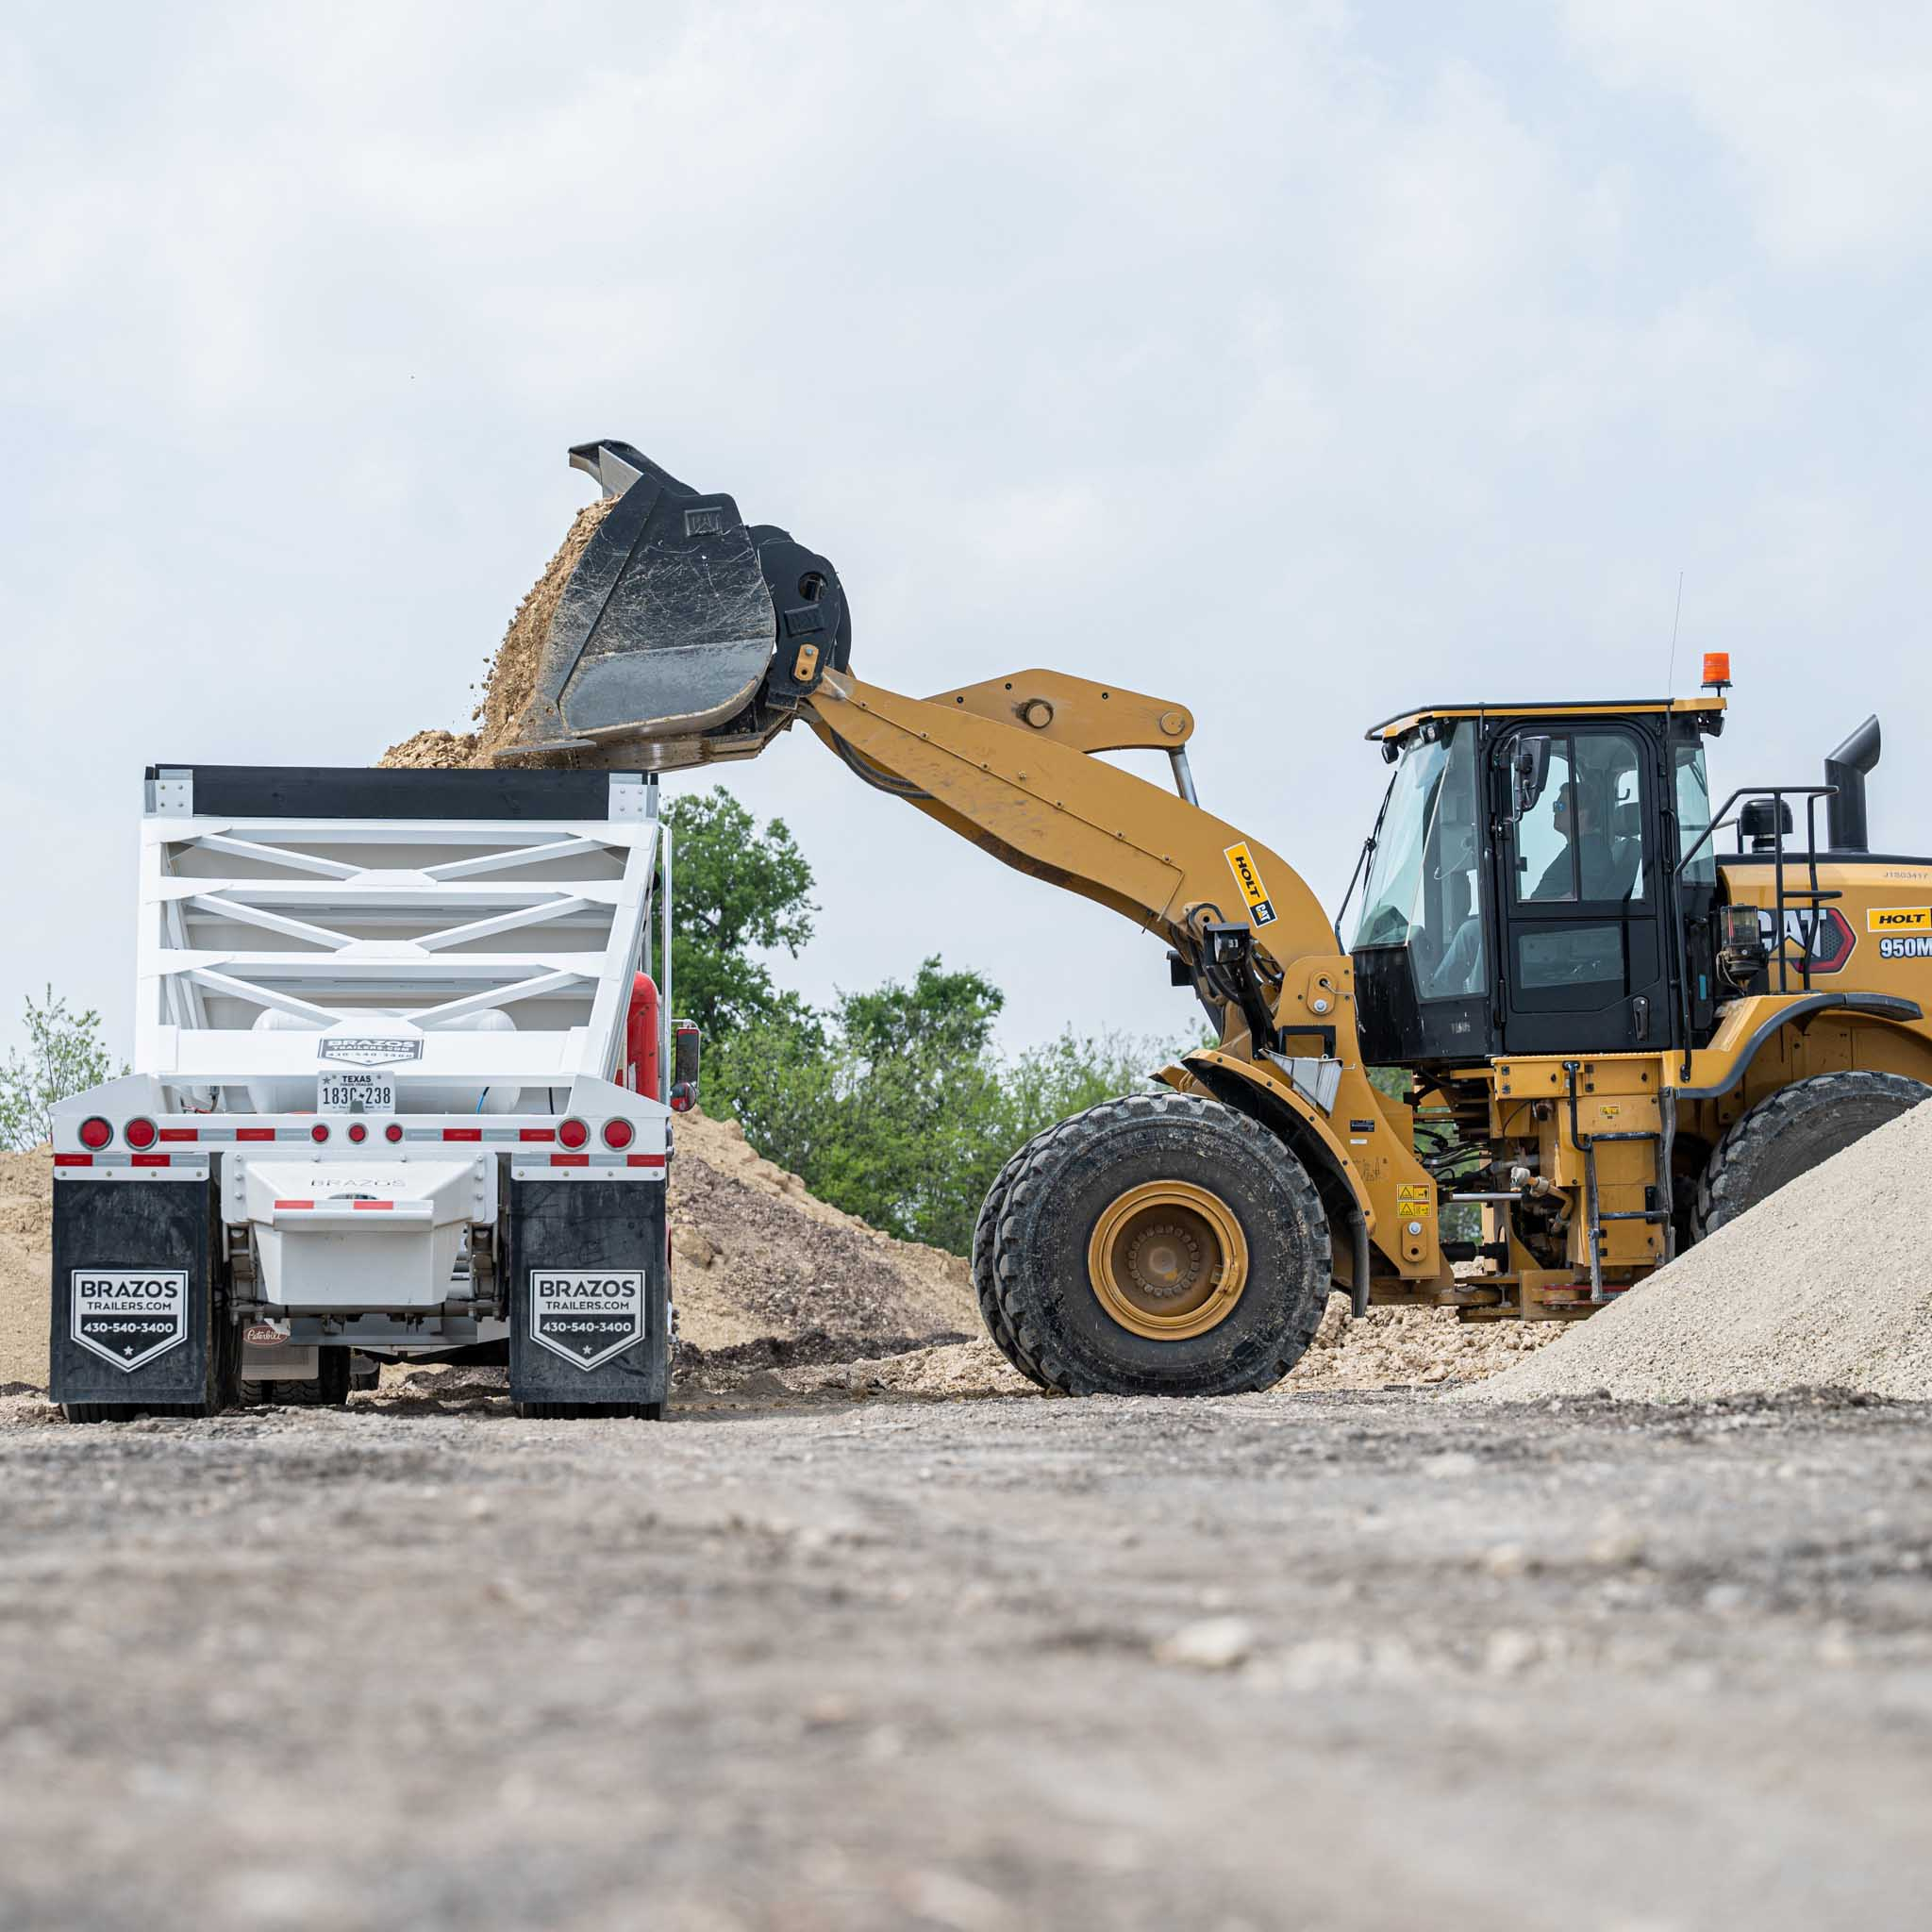 Excavator moving dirt into a haul truck